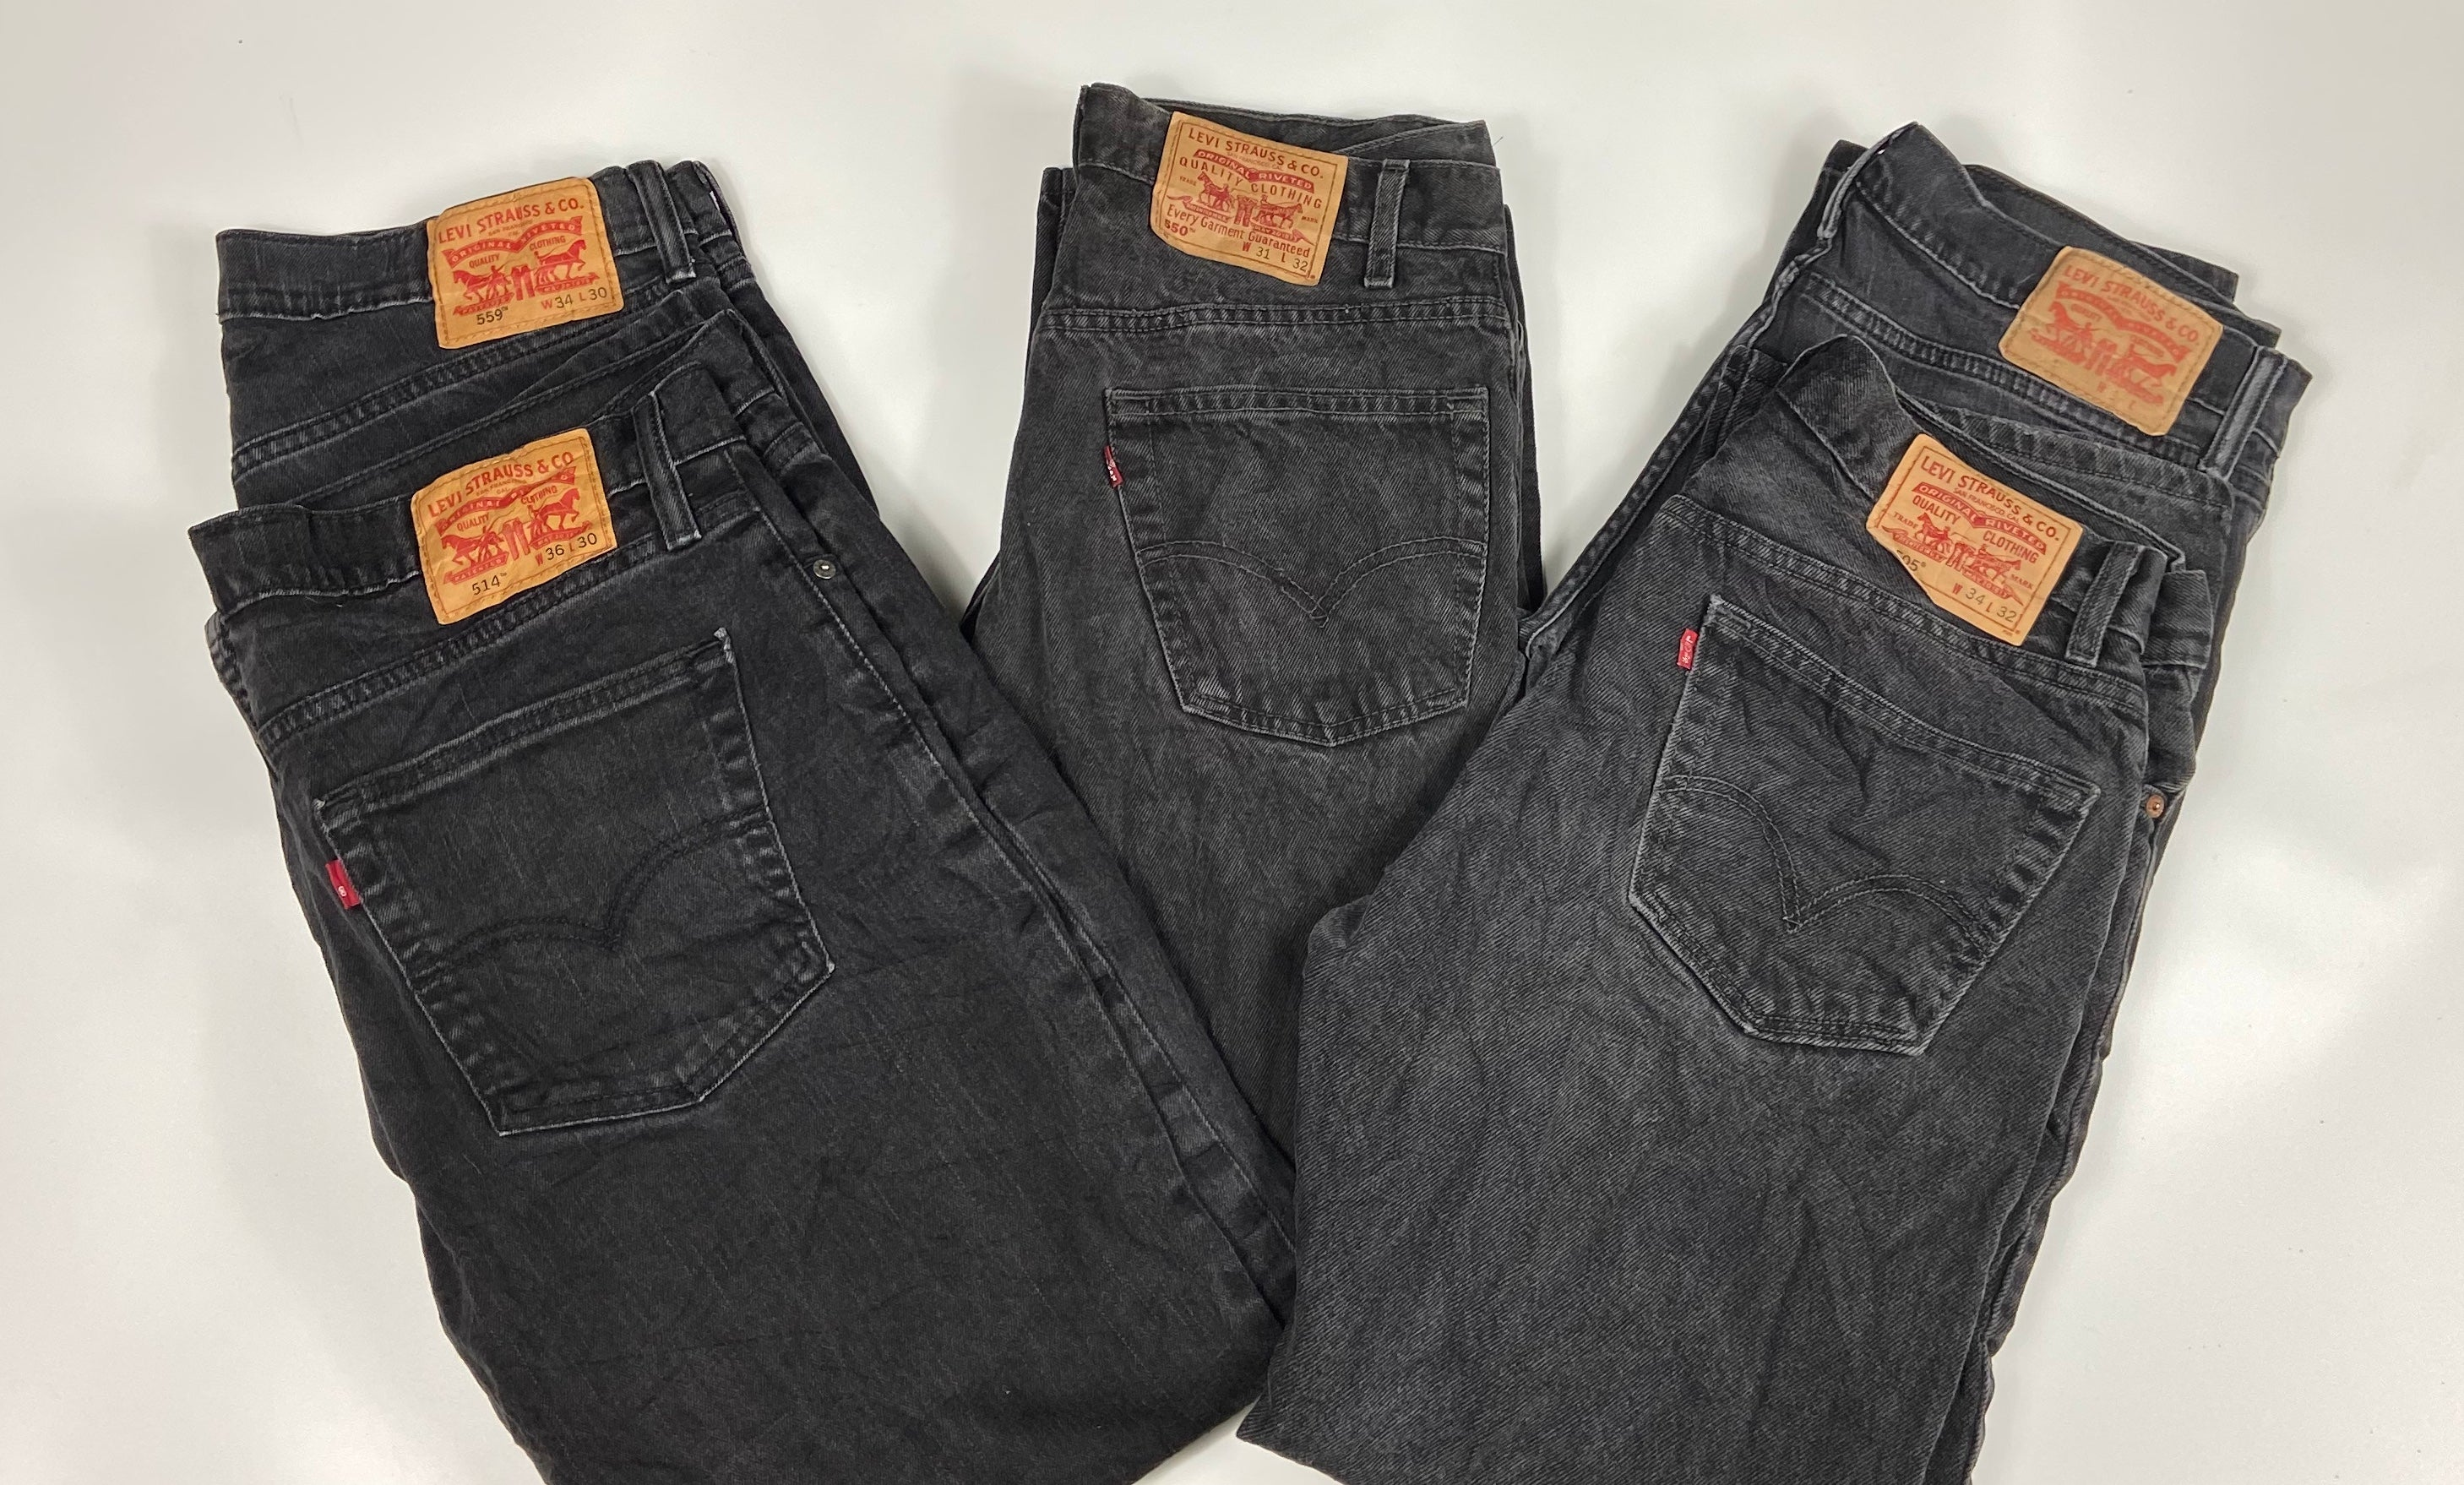 Vintage Original Levi's 501 Button Fly Jeans Waist 36 Length 29